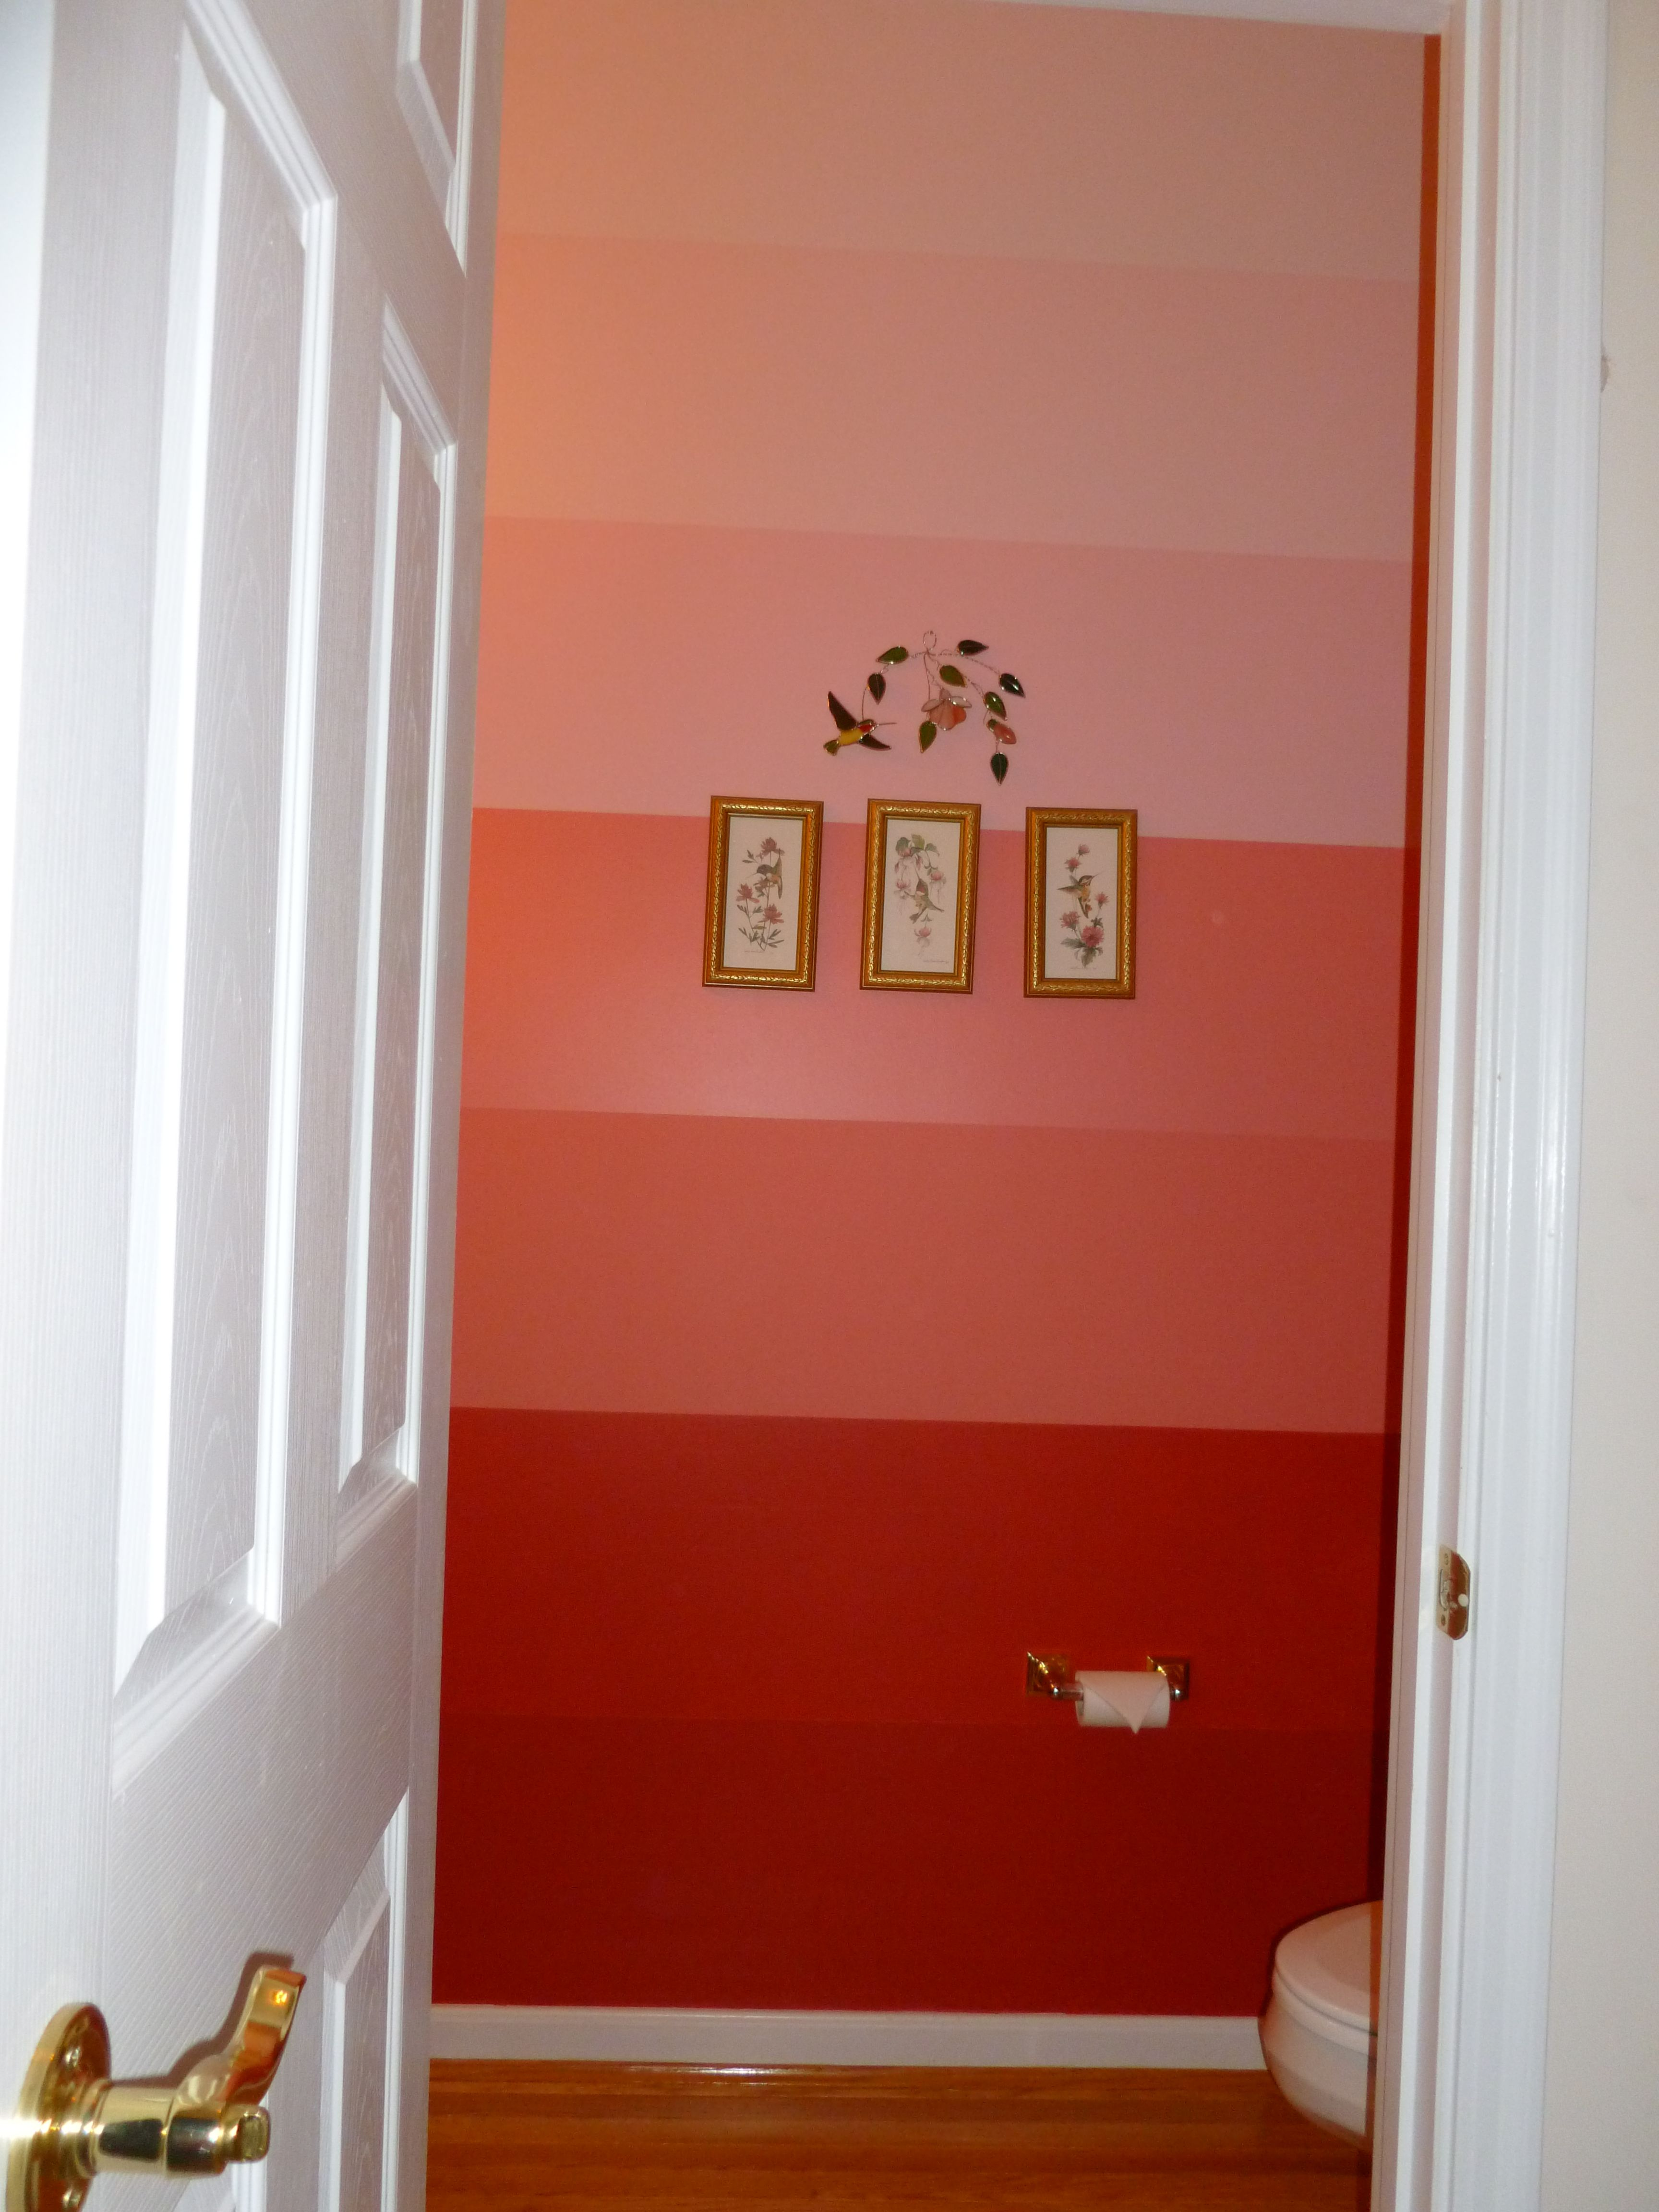 Painted the powder room.  I used the color pallet at Sherwin Williams.  Started with the darkest color on bottom, ending with a pale pink. I like the transition.